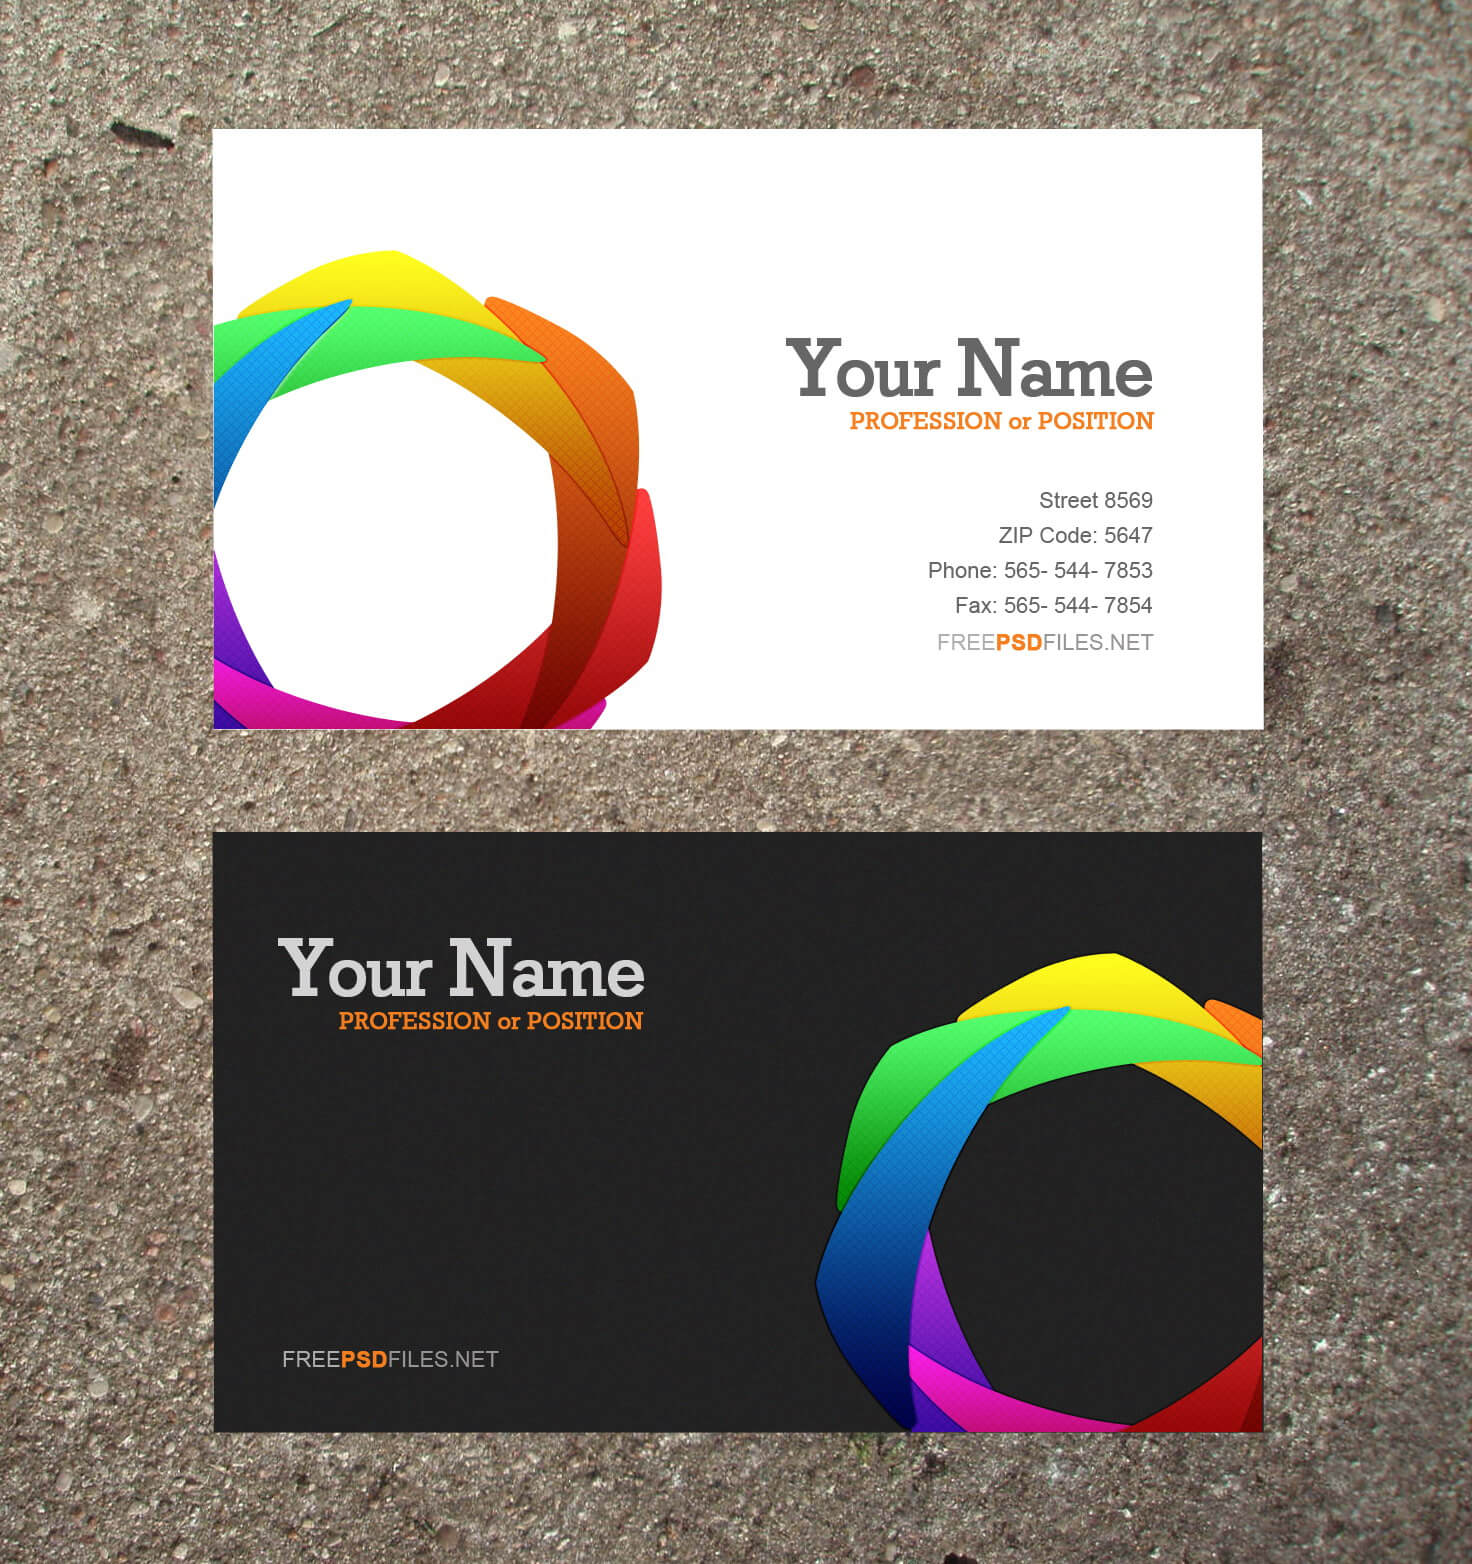 17 Business Cards Templates Free Downloads Images – Free In Blank Business Card Template Download